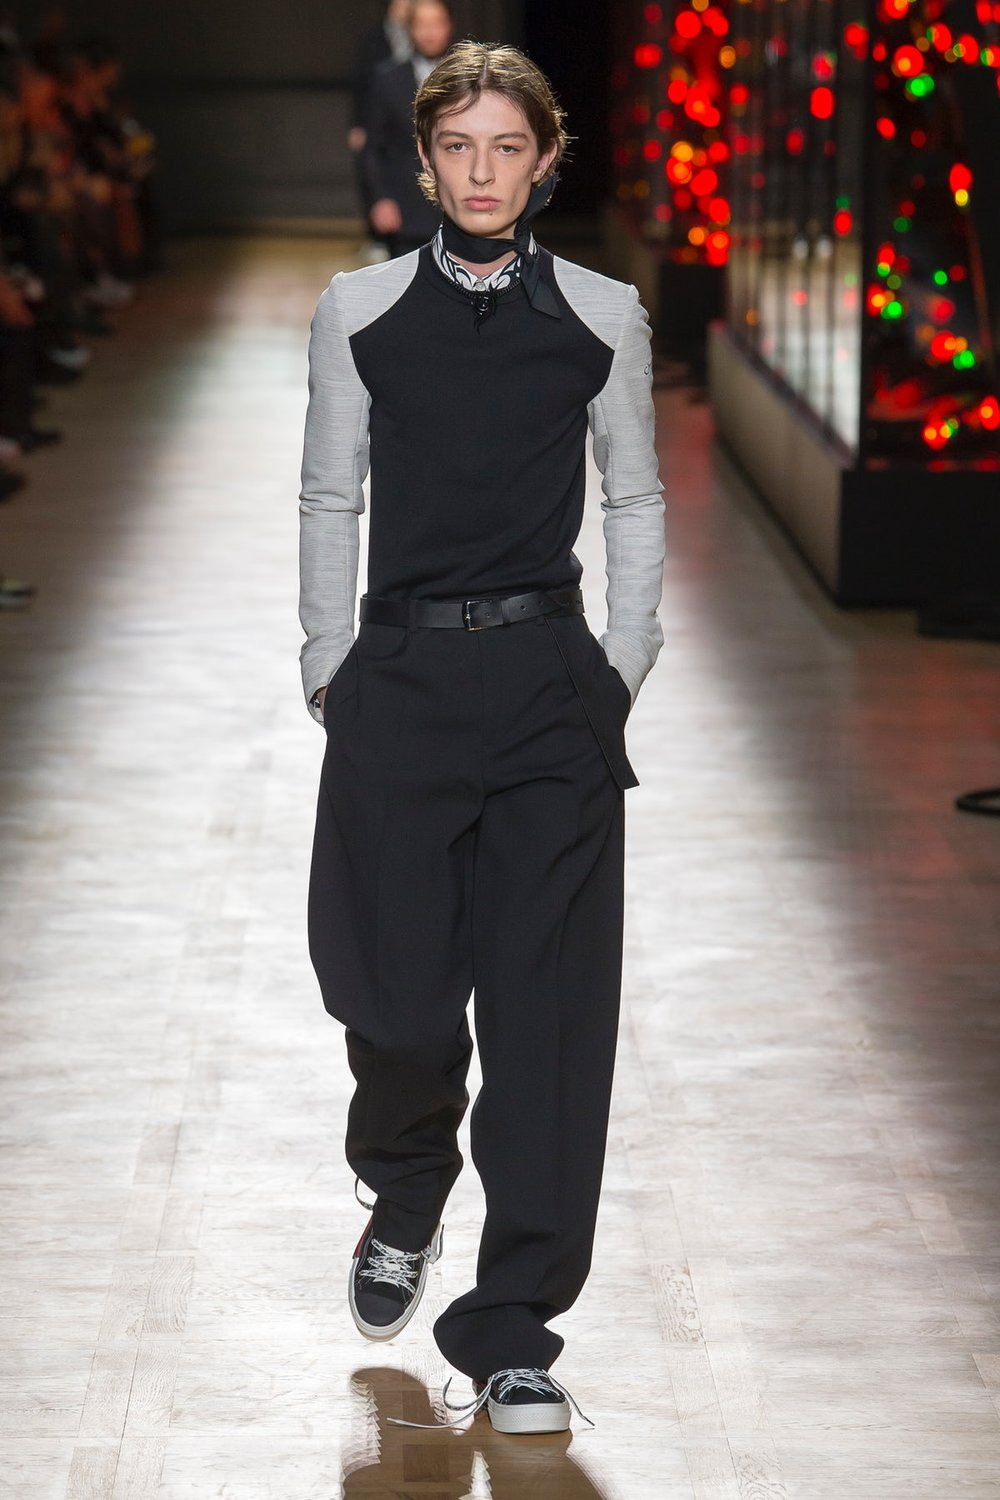 dior_homme_look_8_menswear_autumn_2018.jpeg